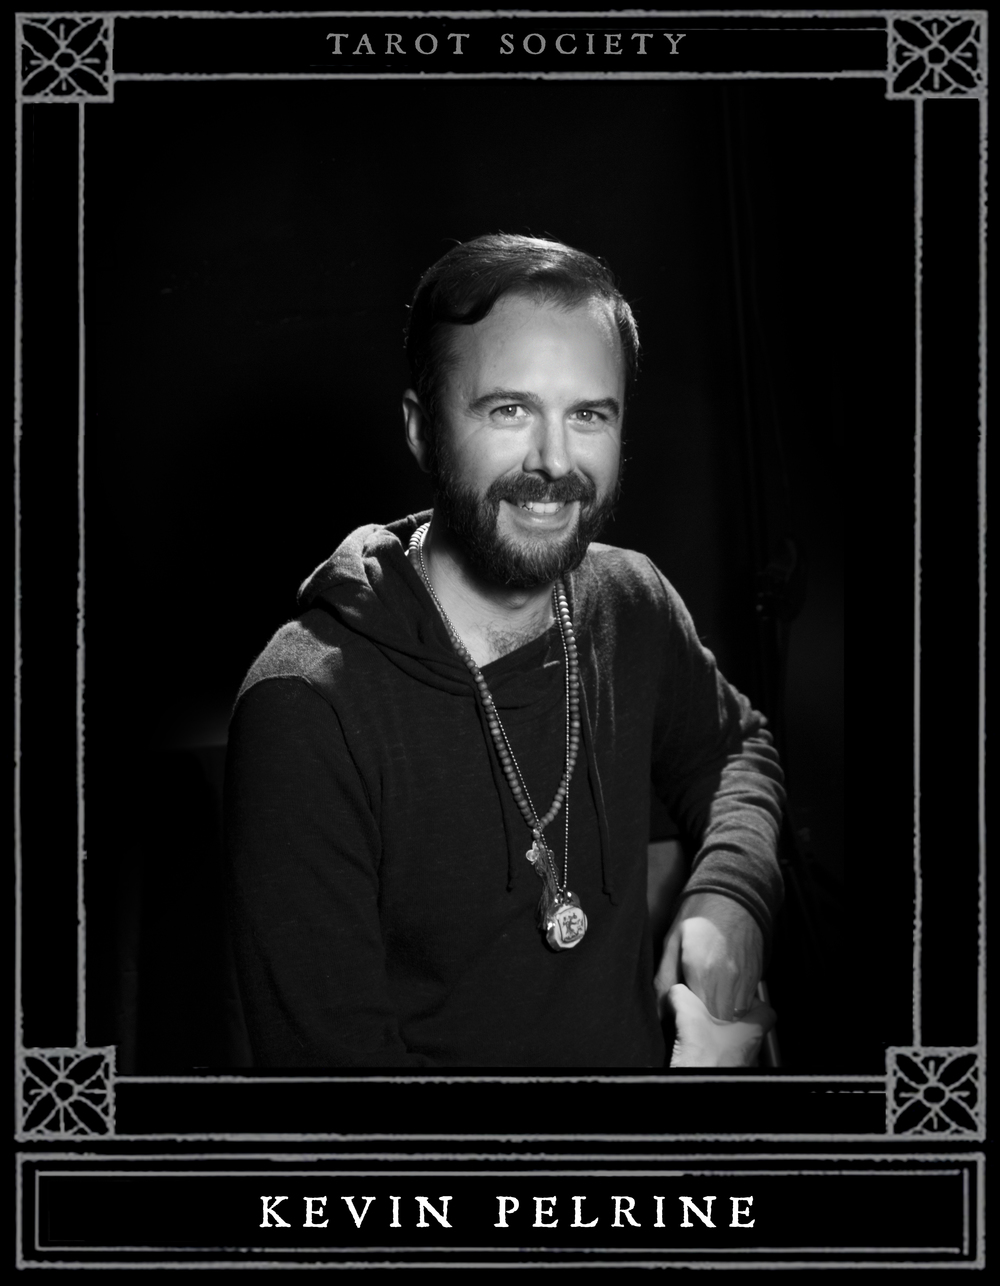 Kevin Pelrine is a designer, musician, and student of the tarot. He is co-producer of The House of Screwball, and co-founder of Tarot Society.